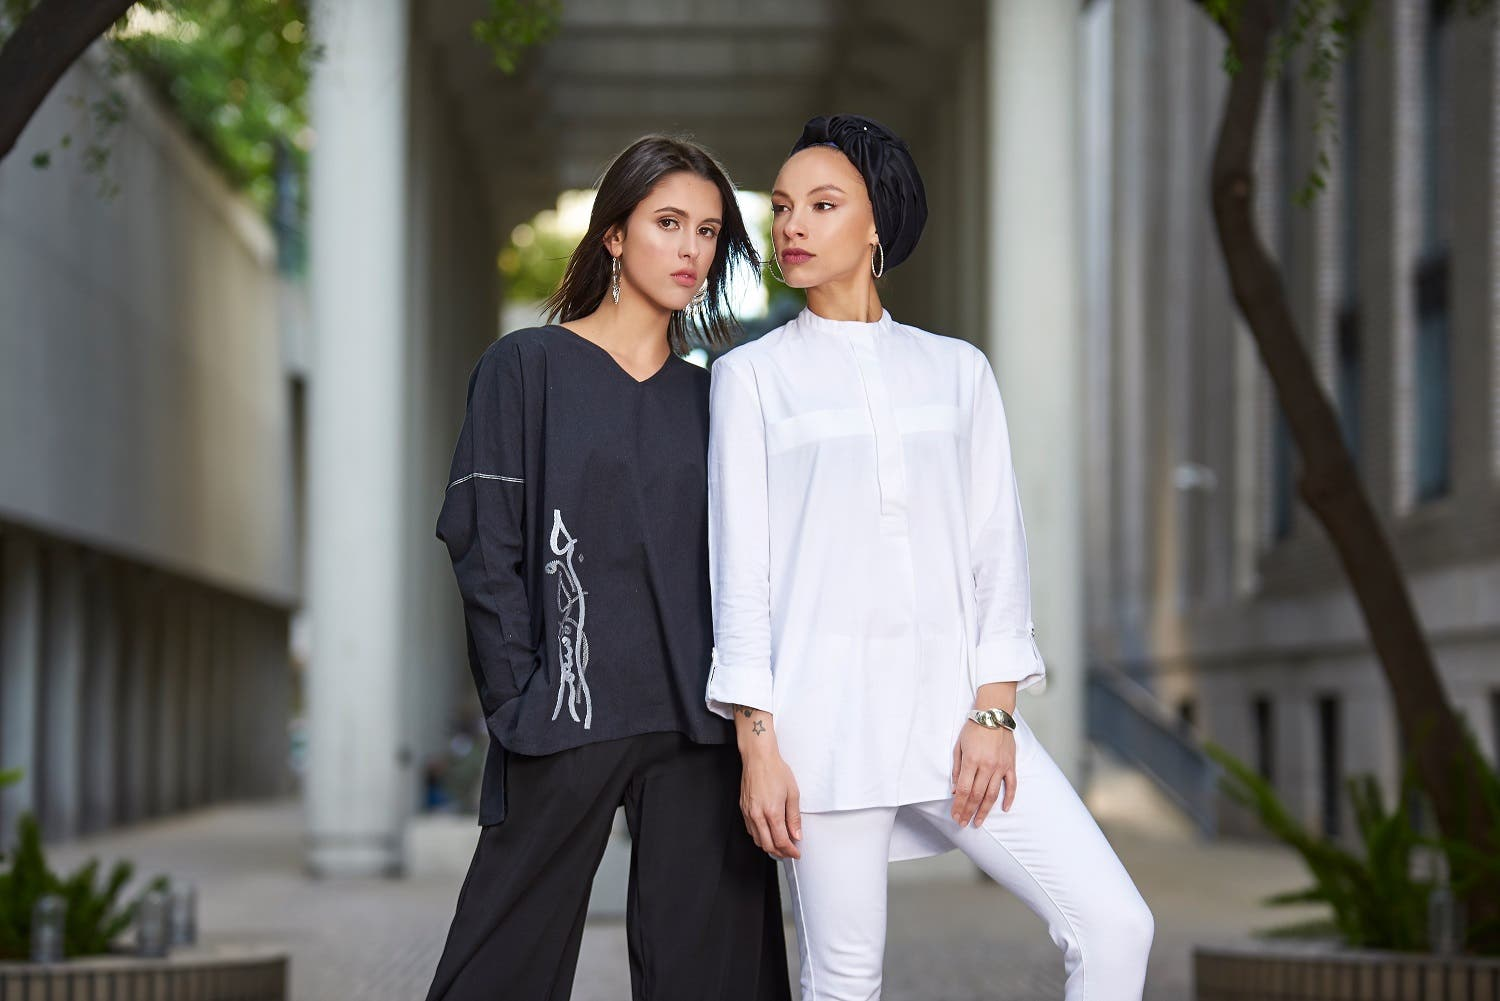 Nabil Pathan Fashion designers who 'Khan': Duo create ethical modest wear